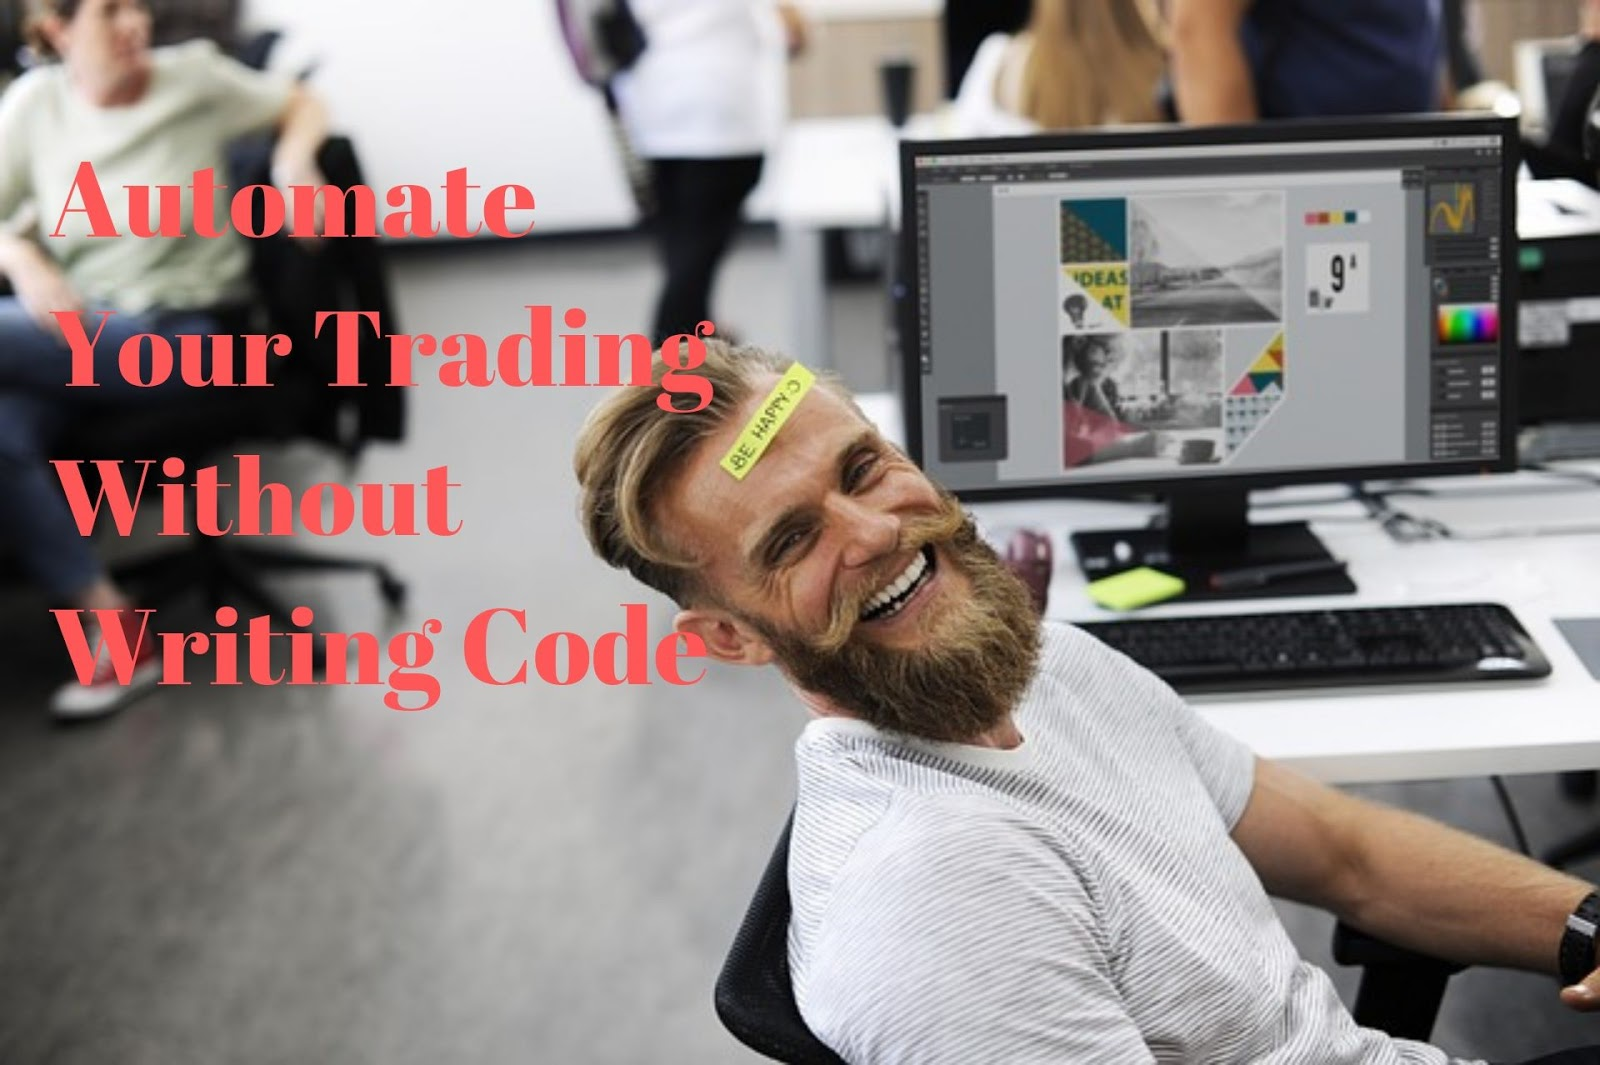 Automate your trading without writing code